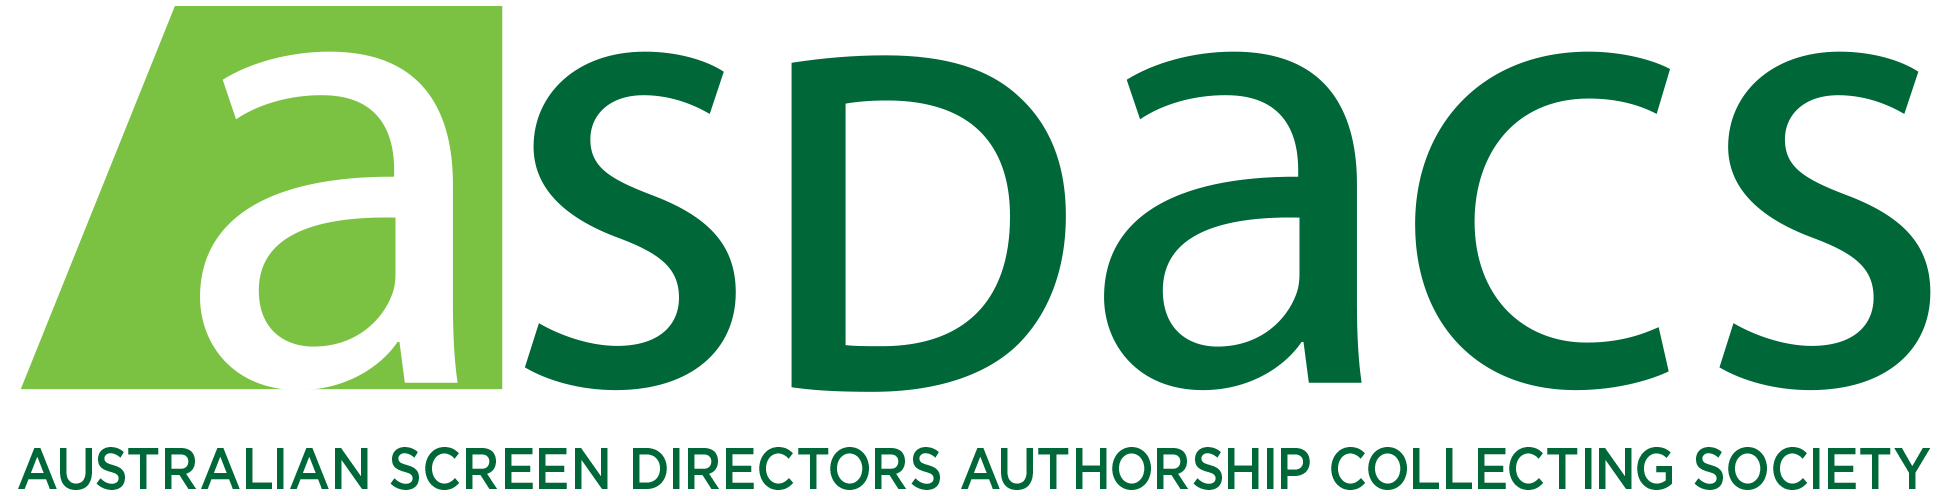 ASDACS - Australian Screen Directors Authorship Collecting Society